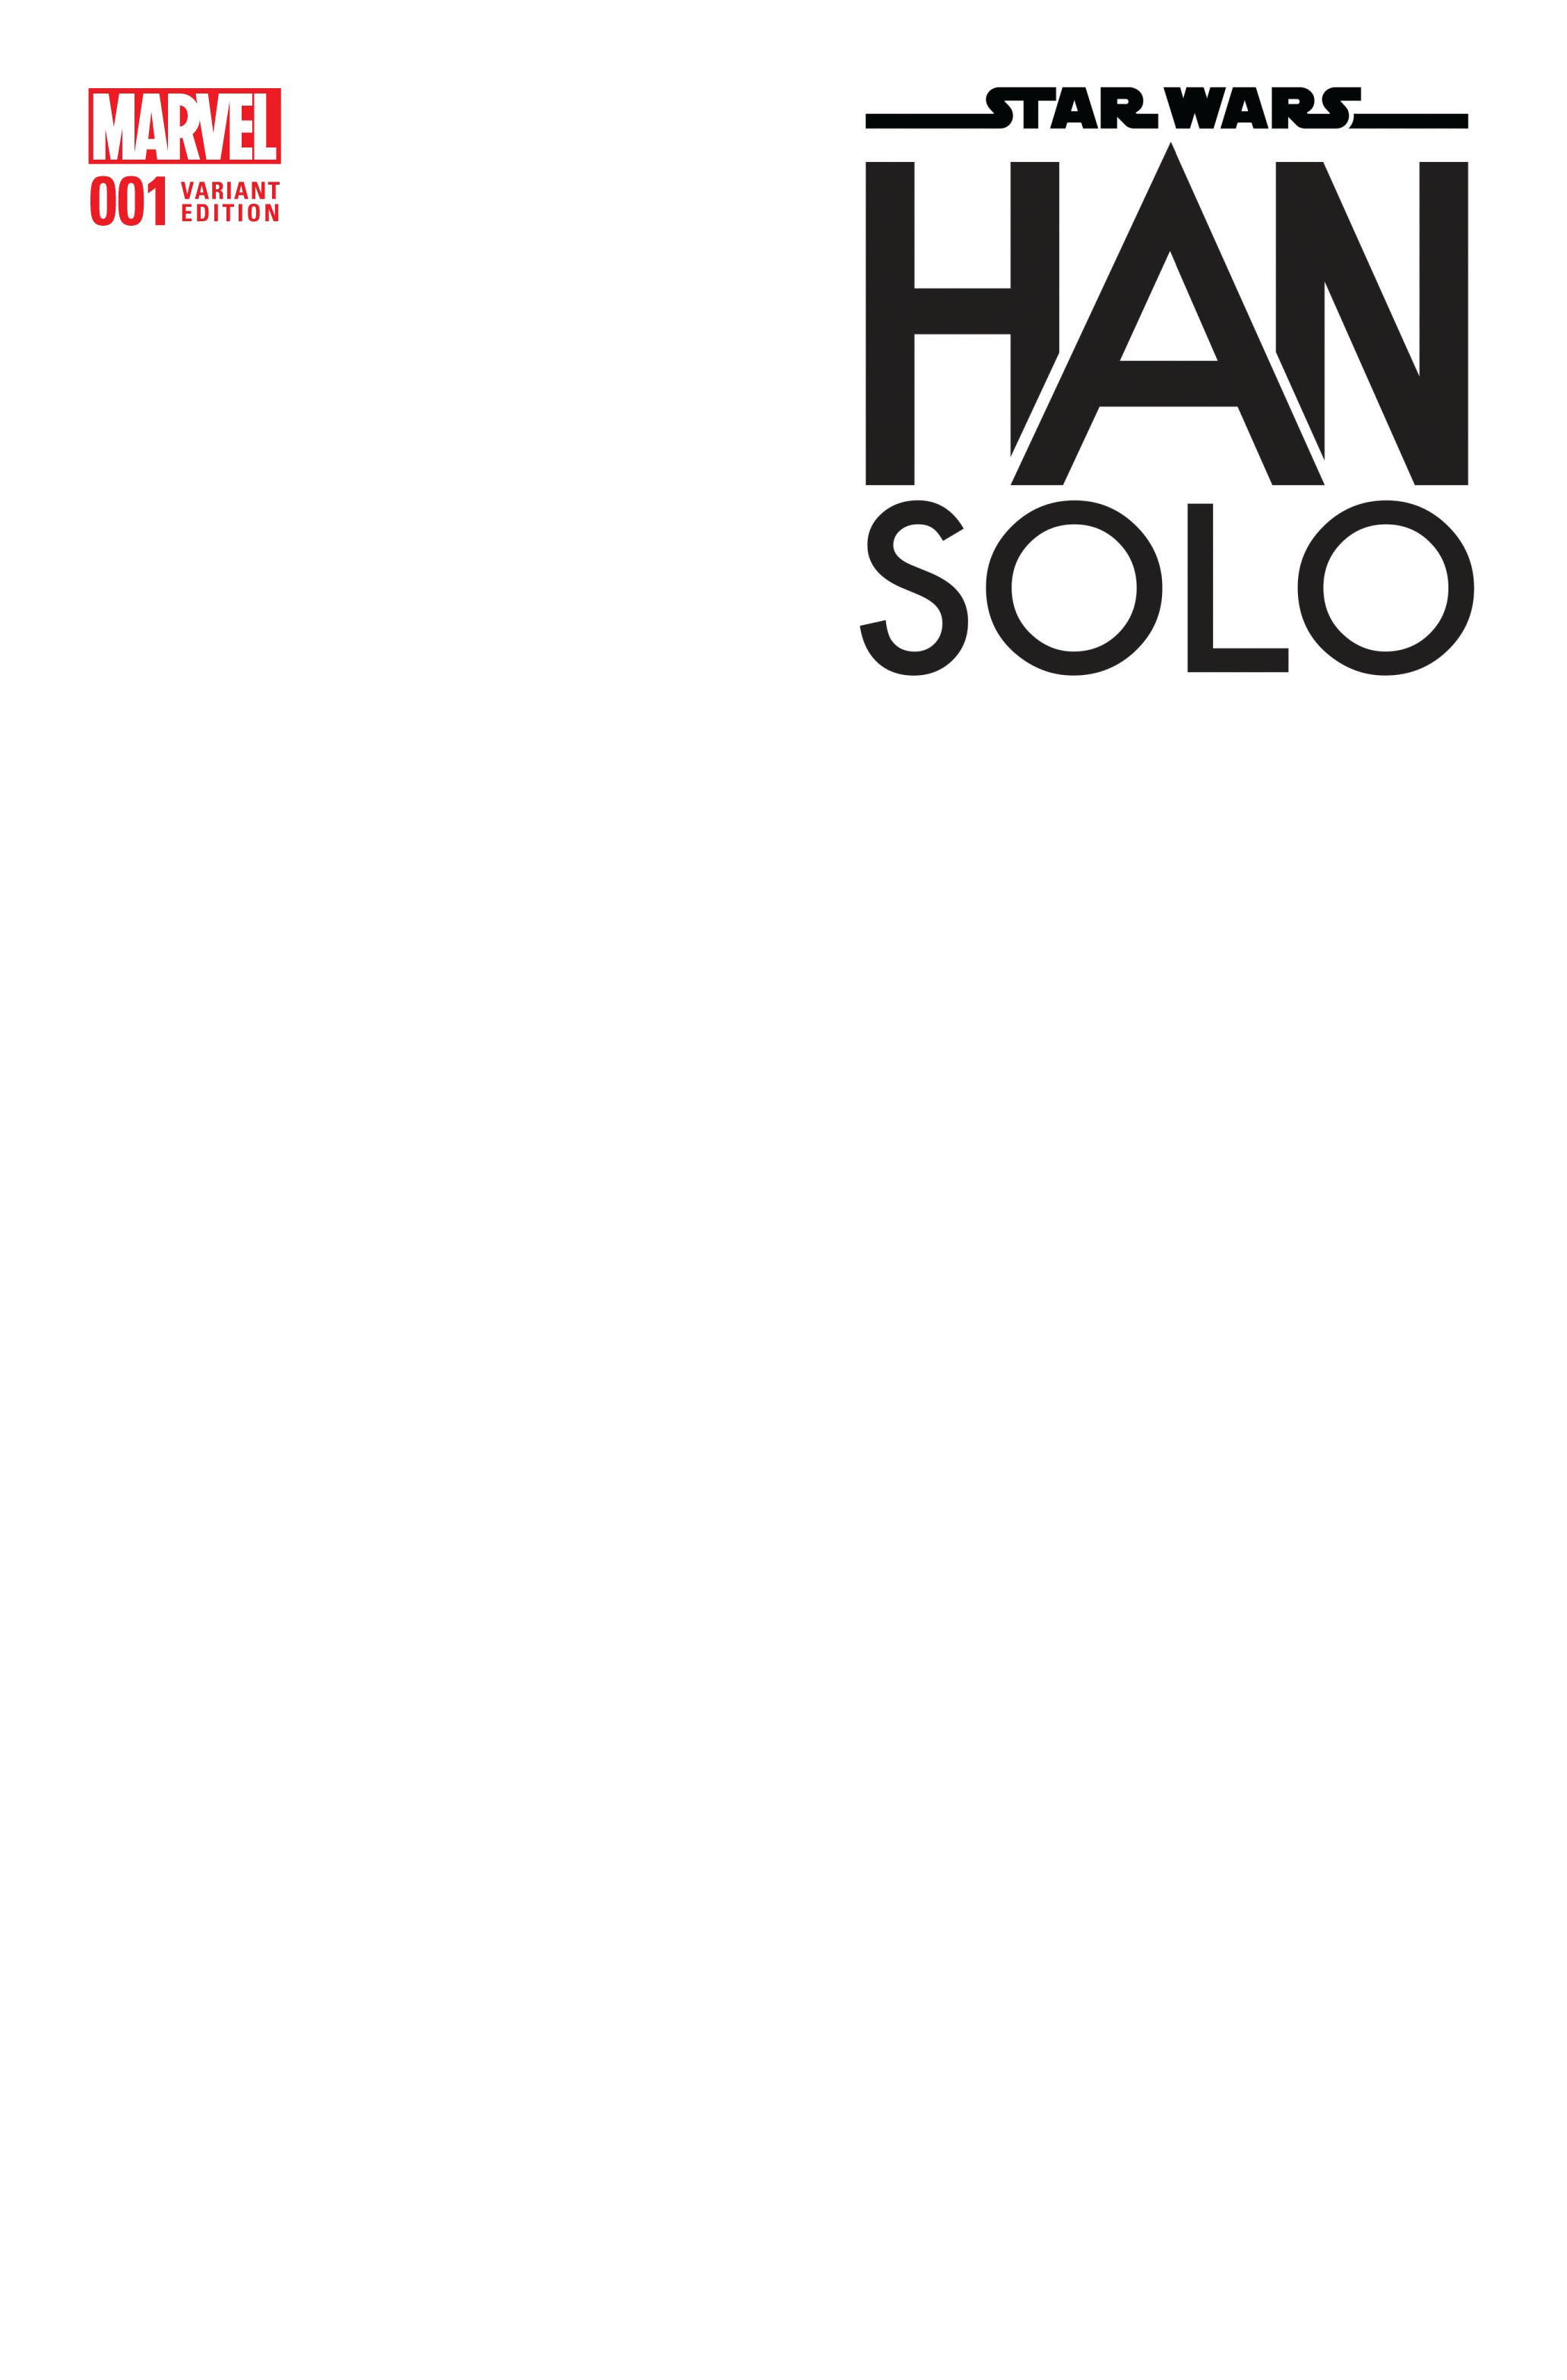 STAR WARS HAN SOLO #1 (OF 5) BLANK VAR